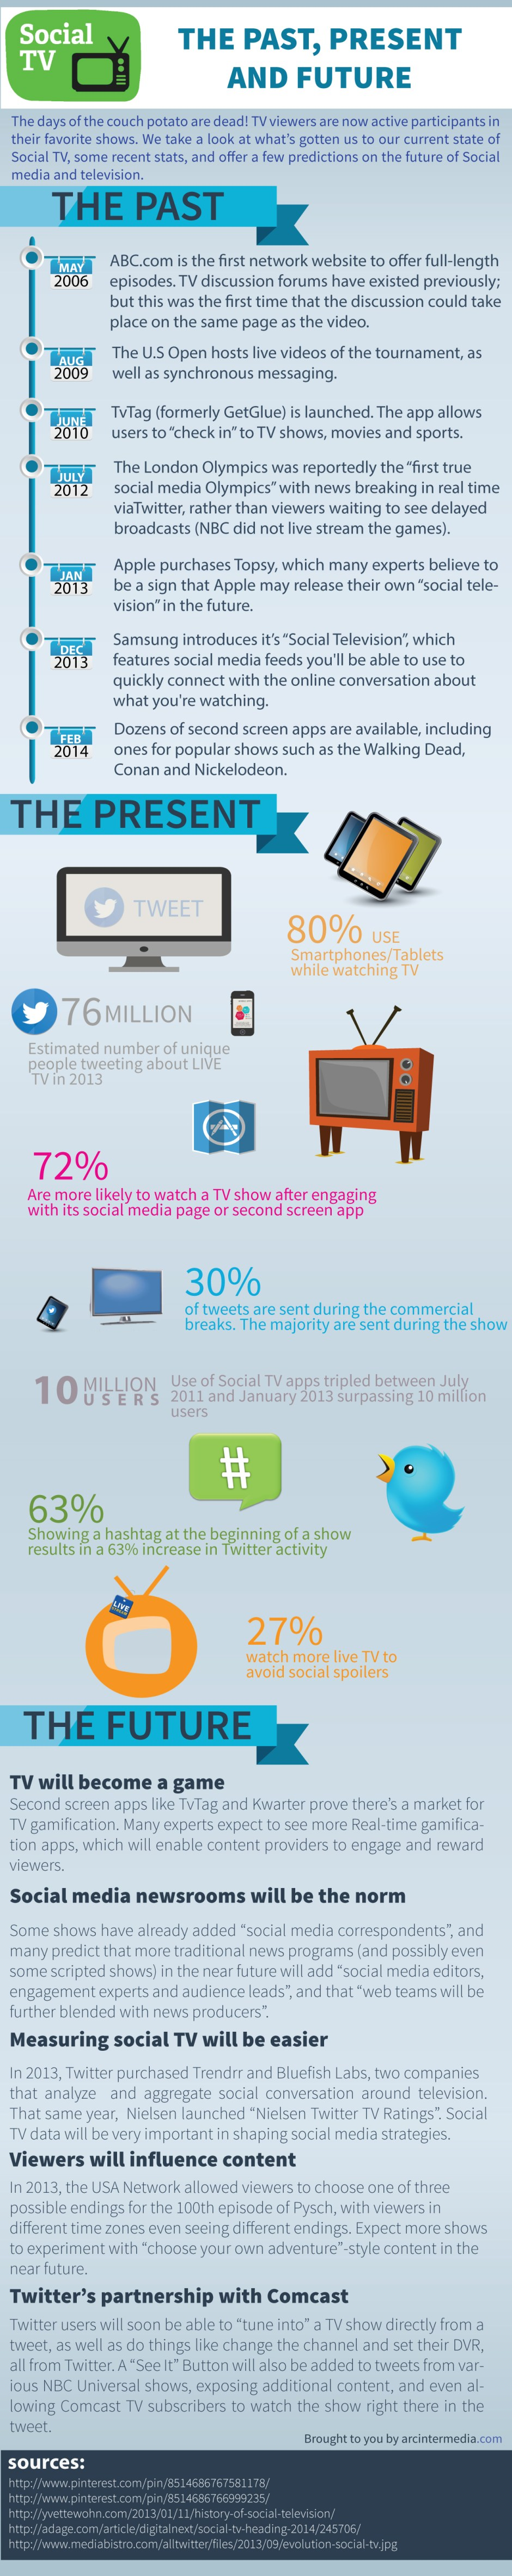 Social Media TV Predictions